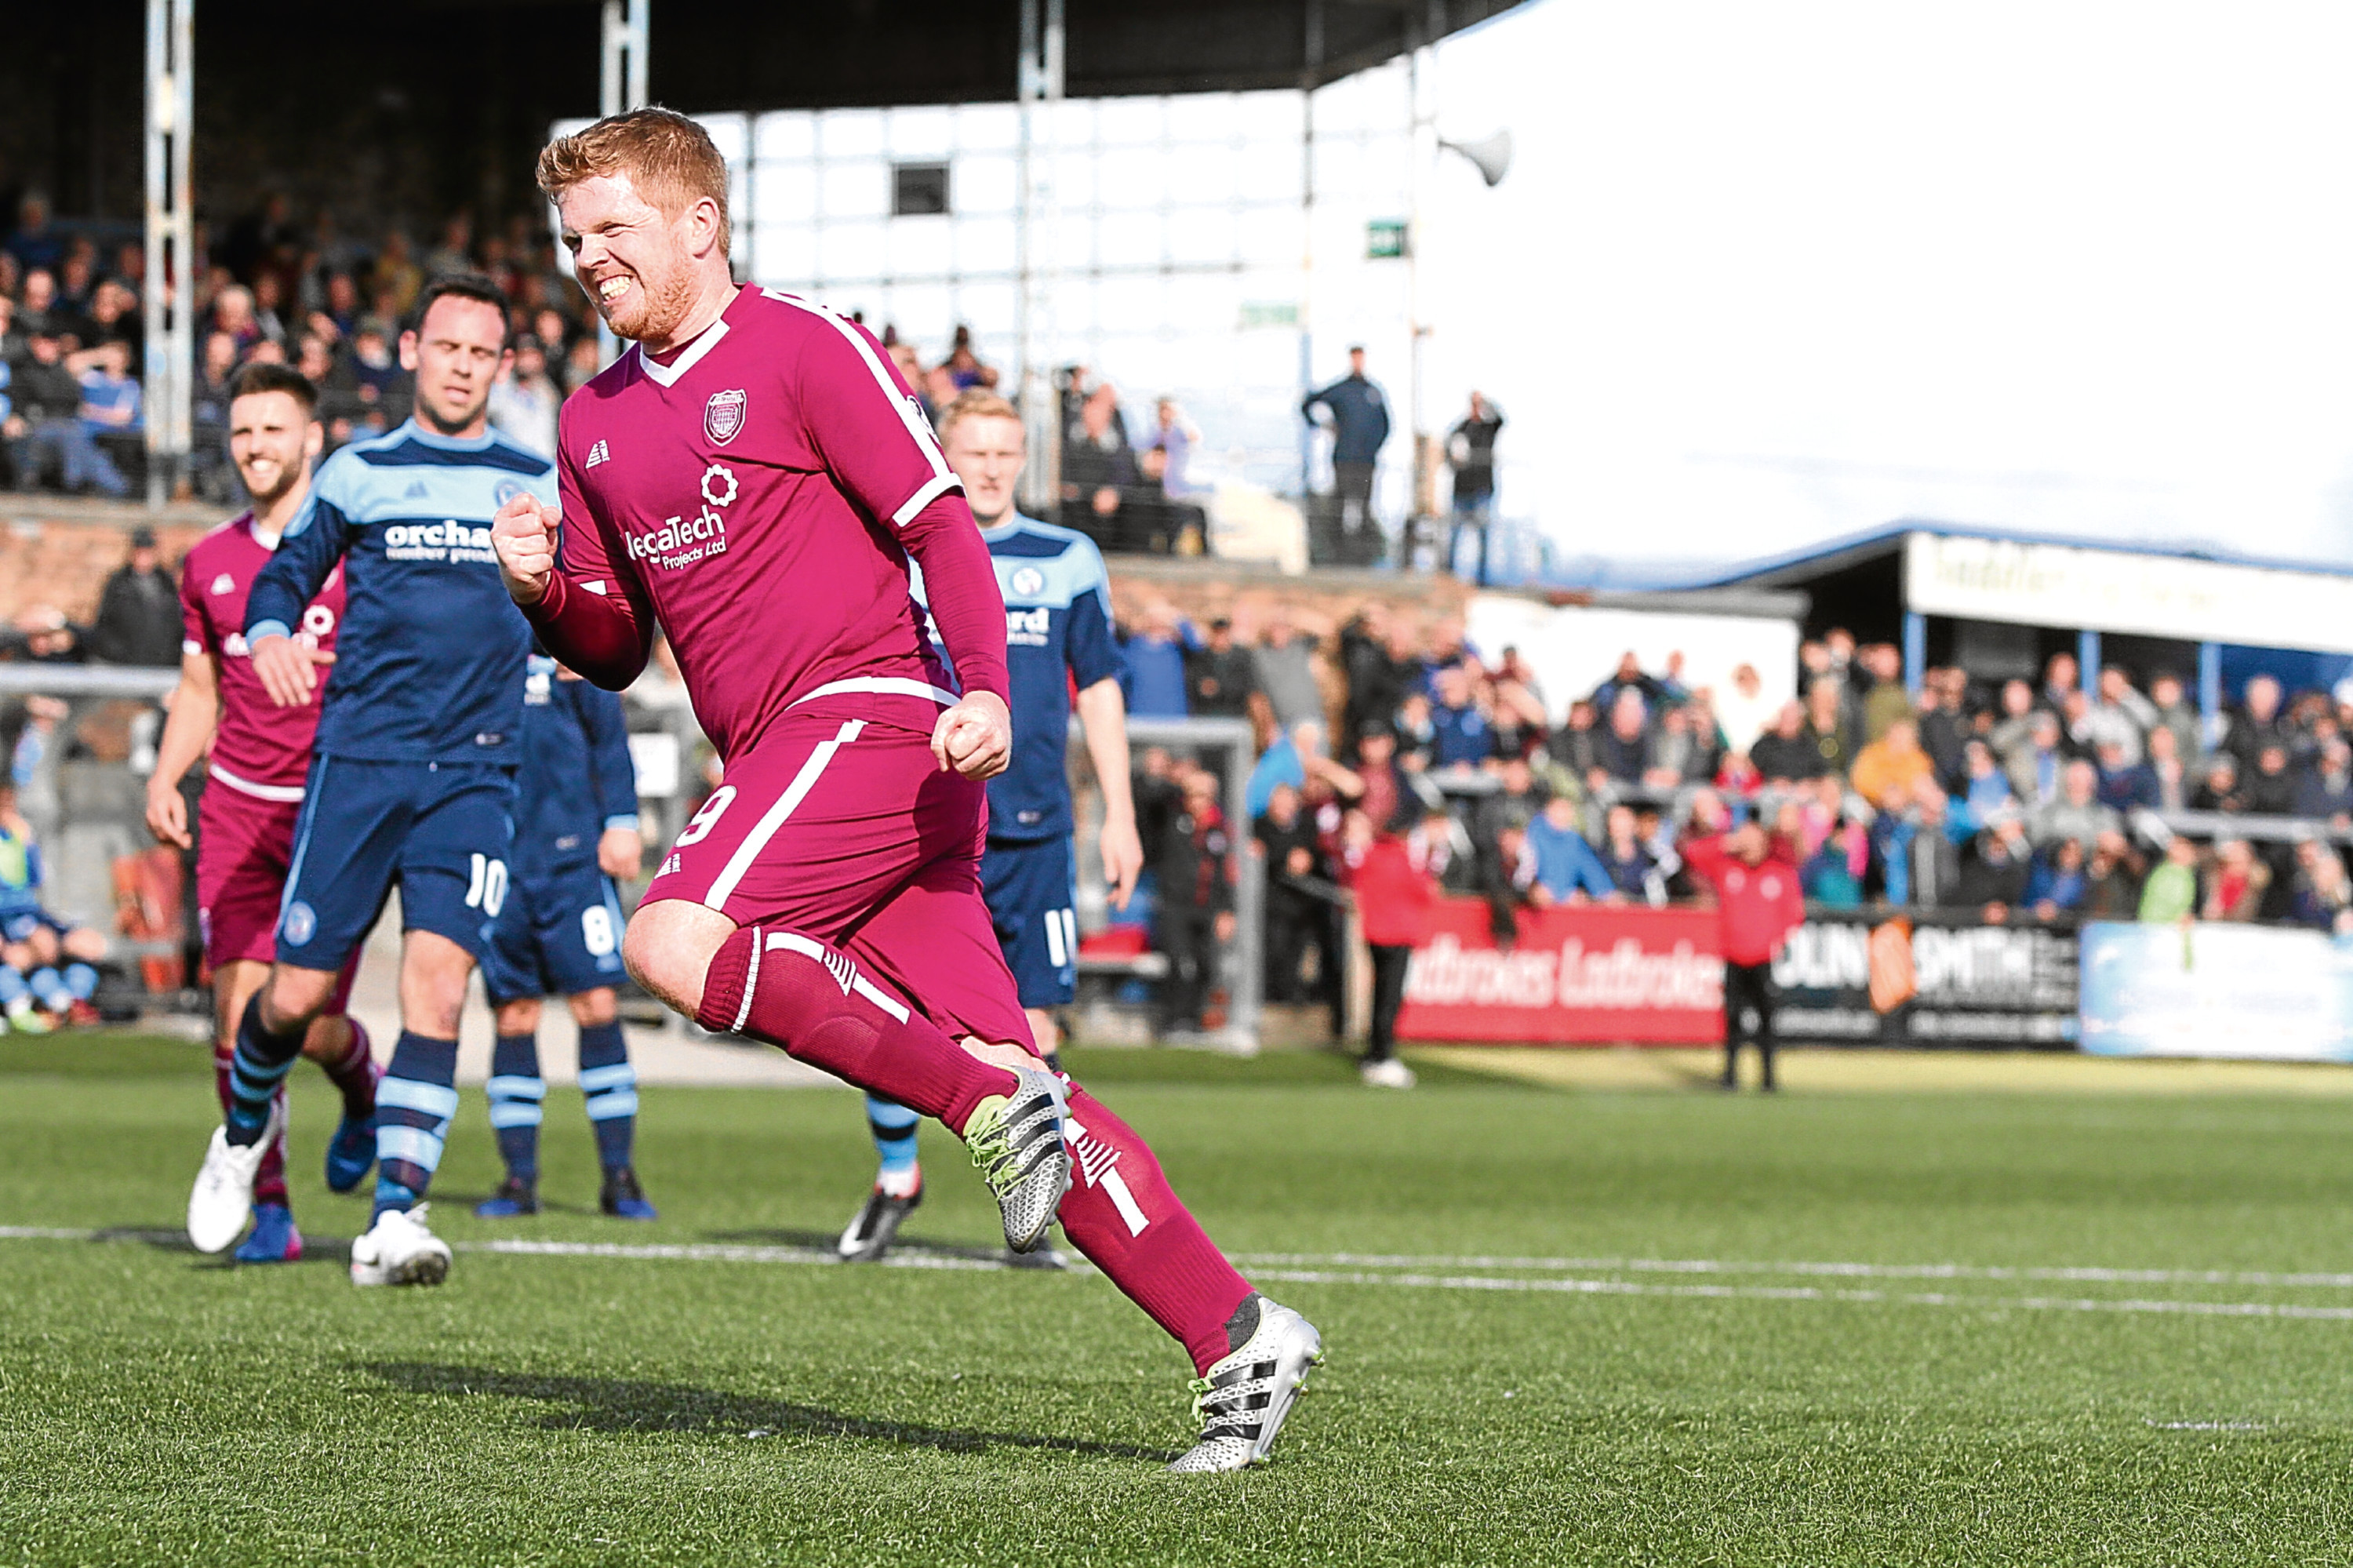 Ryan McCord scores Arbroath's first goal from the penalty spot.